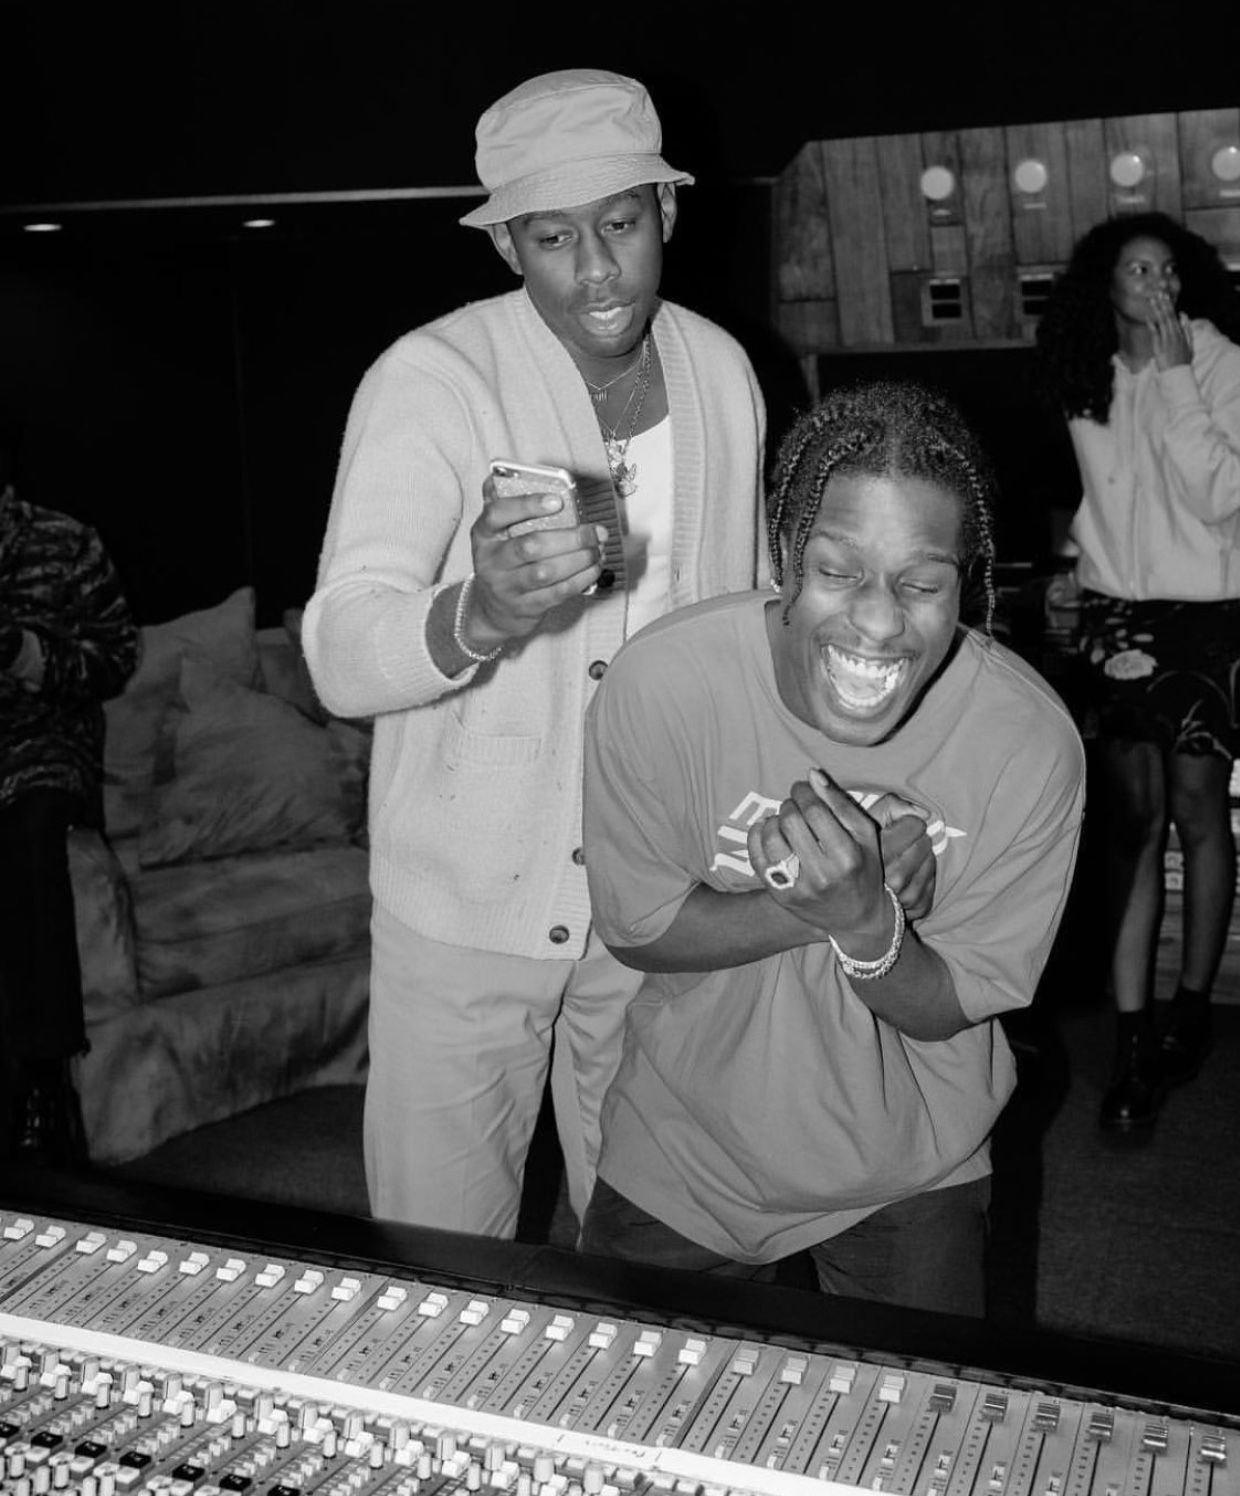 Asap Rocky Black Ink Gallery: Tyler The Creator, Tyler The